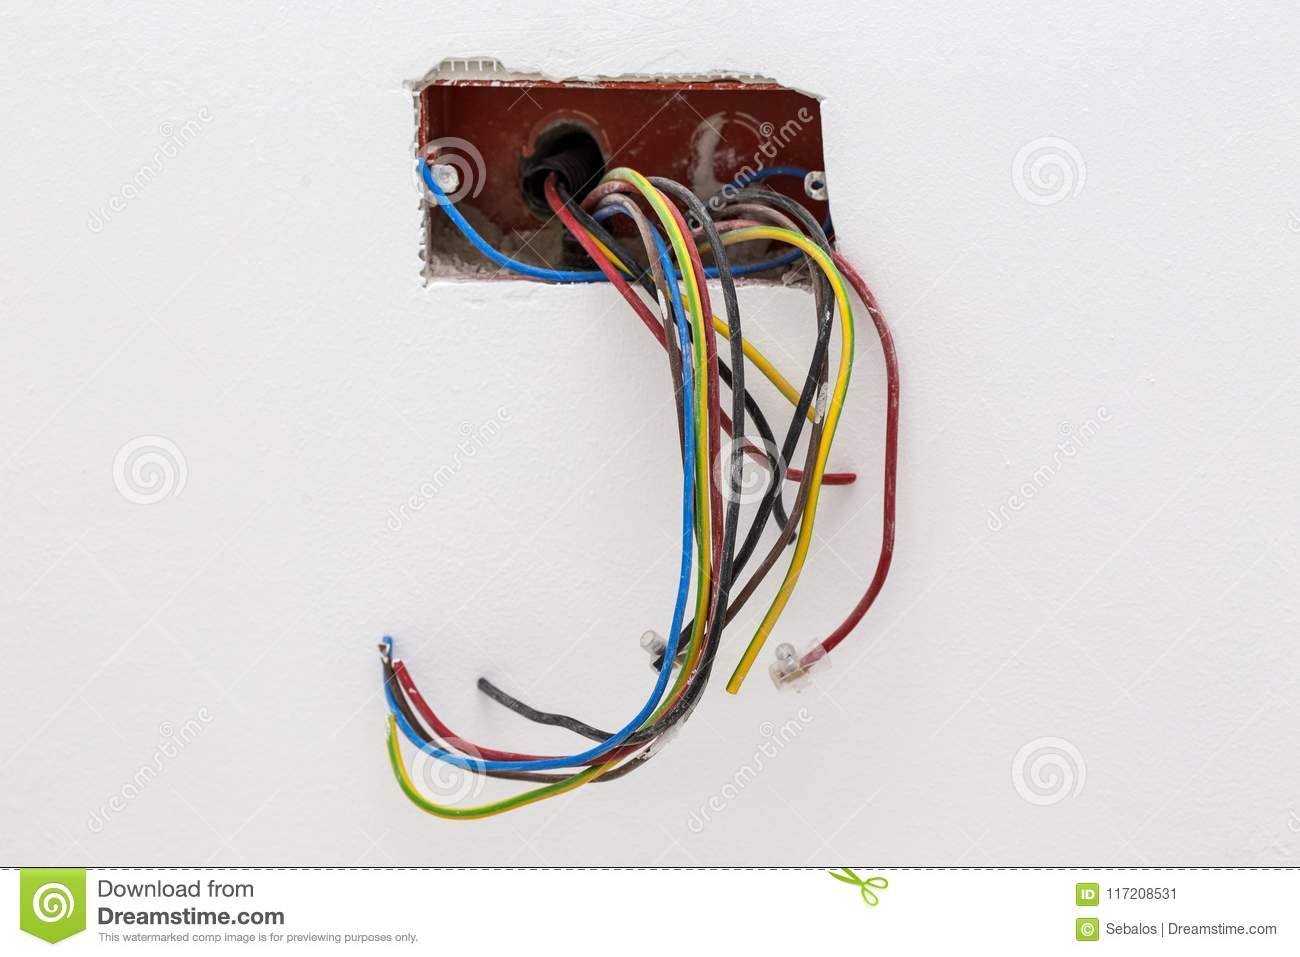 Unfinished Electrical Mains Outlet Socket With Wires Wiring Download Stock Image Of Dangerous